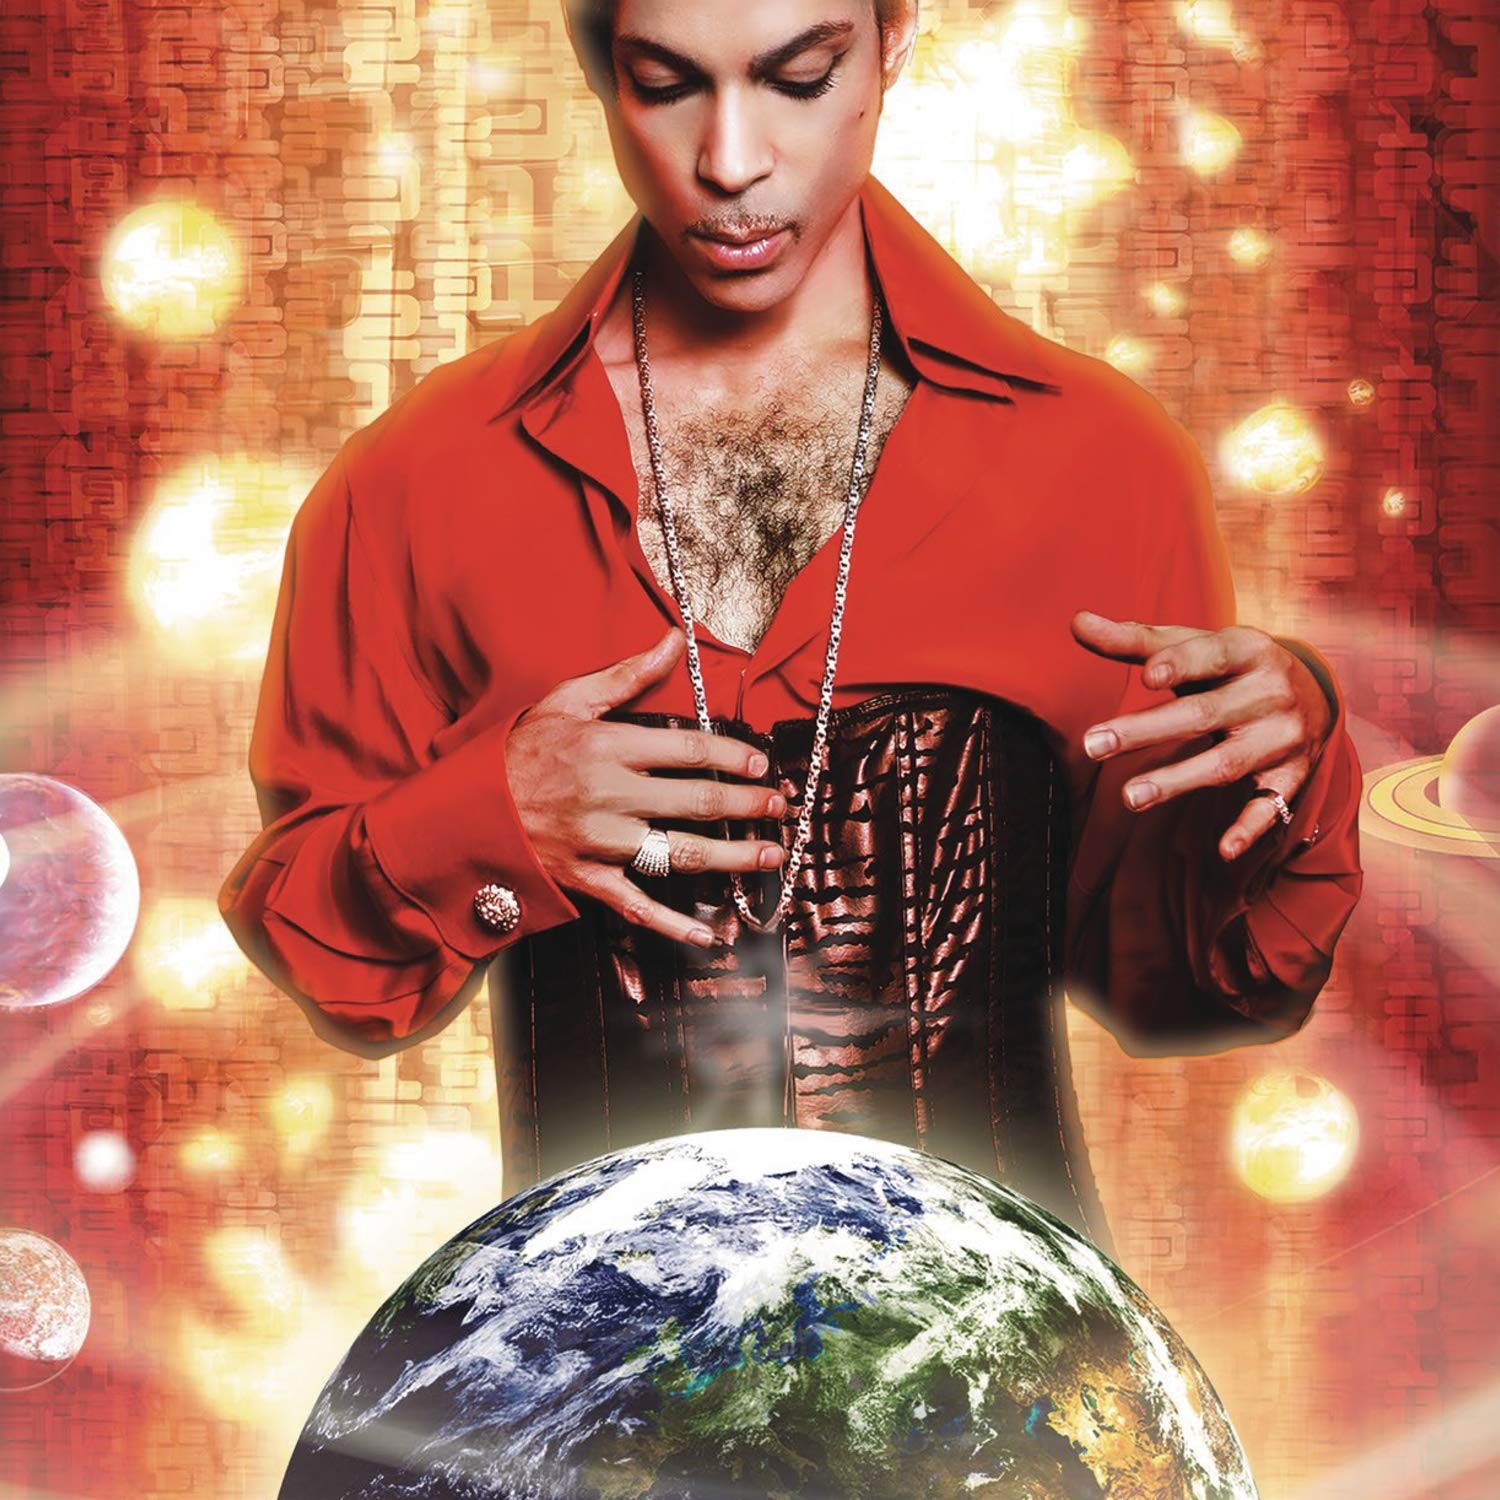 Prince - Planet Earth Vinyl LP